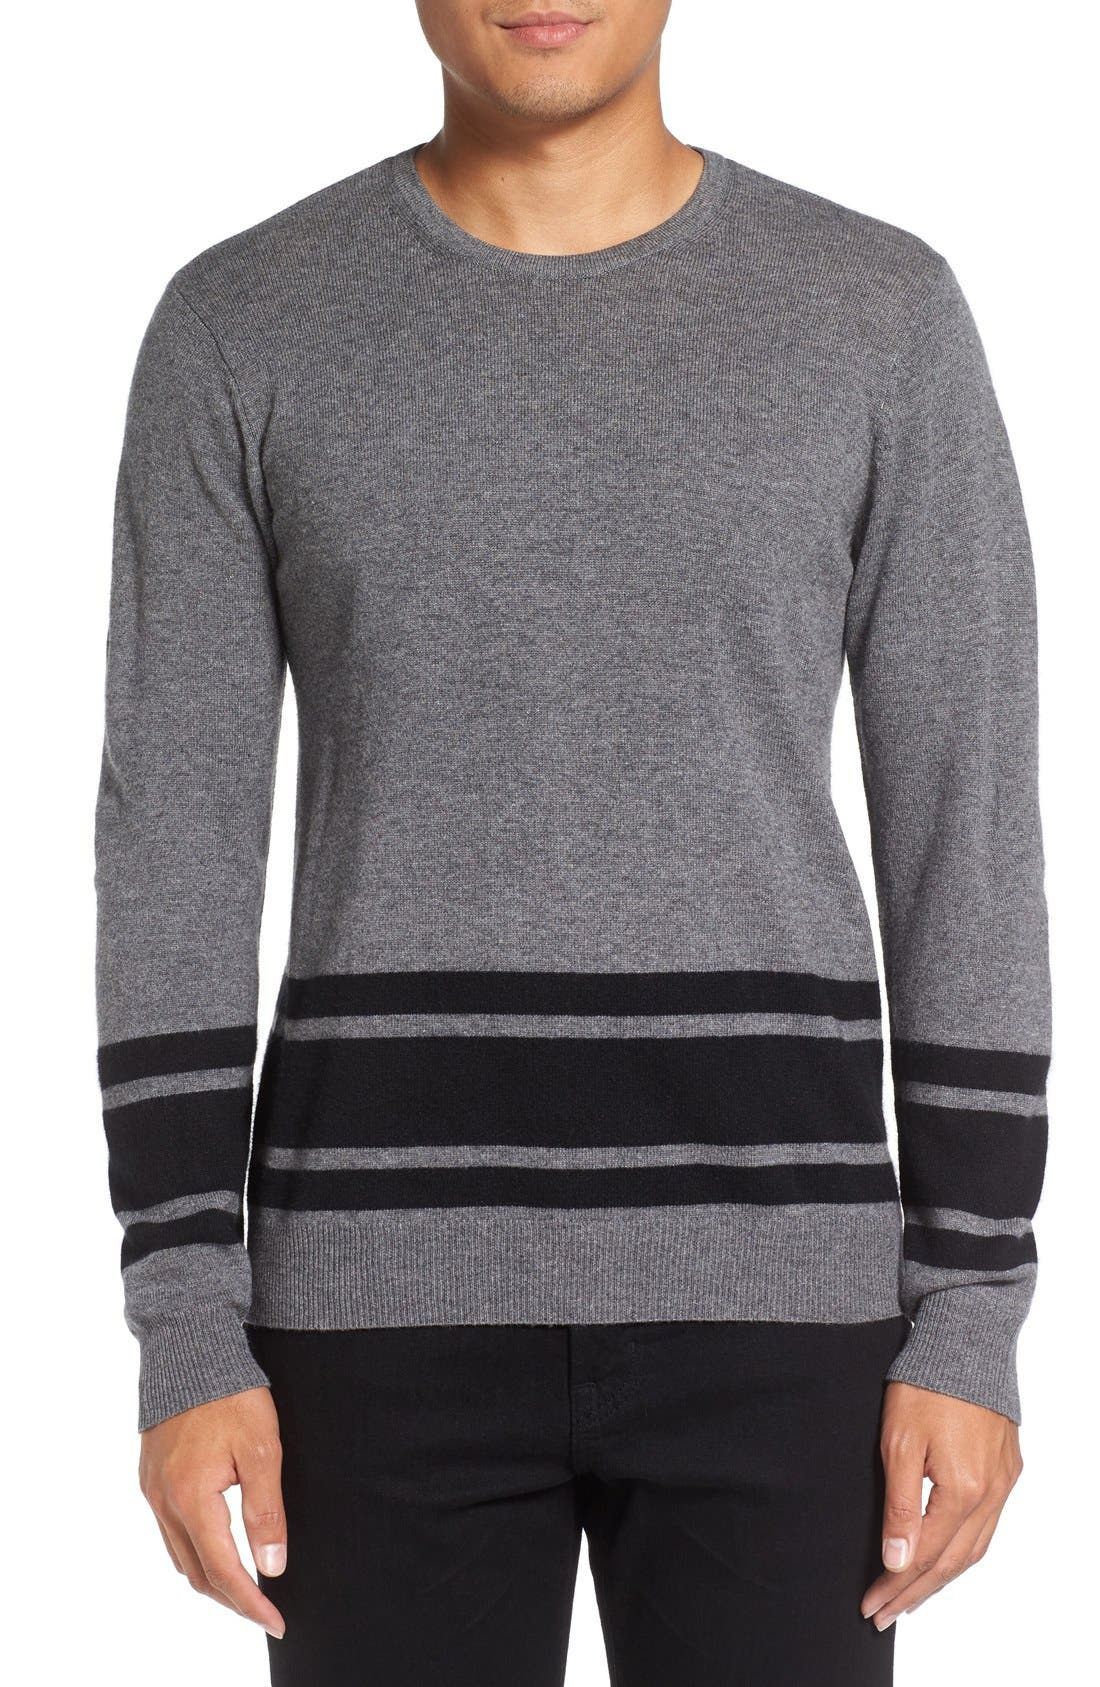 Stripe Wool Blend Sweater,                             Main thumbnail 1, color,                             Derby Grey/ Black